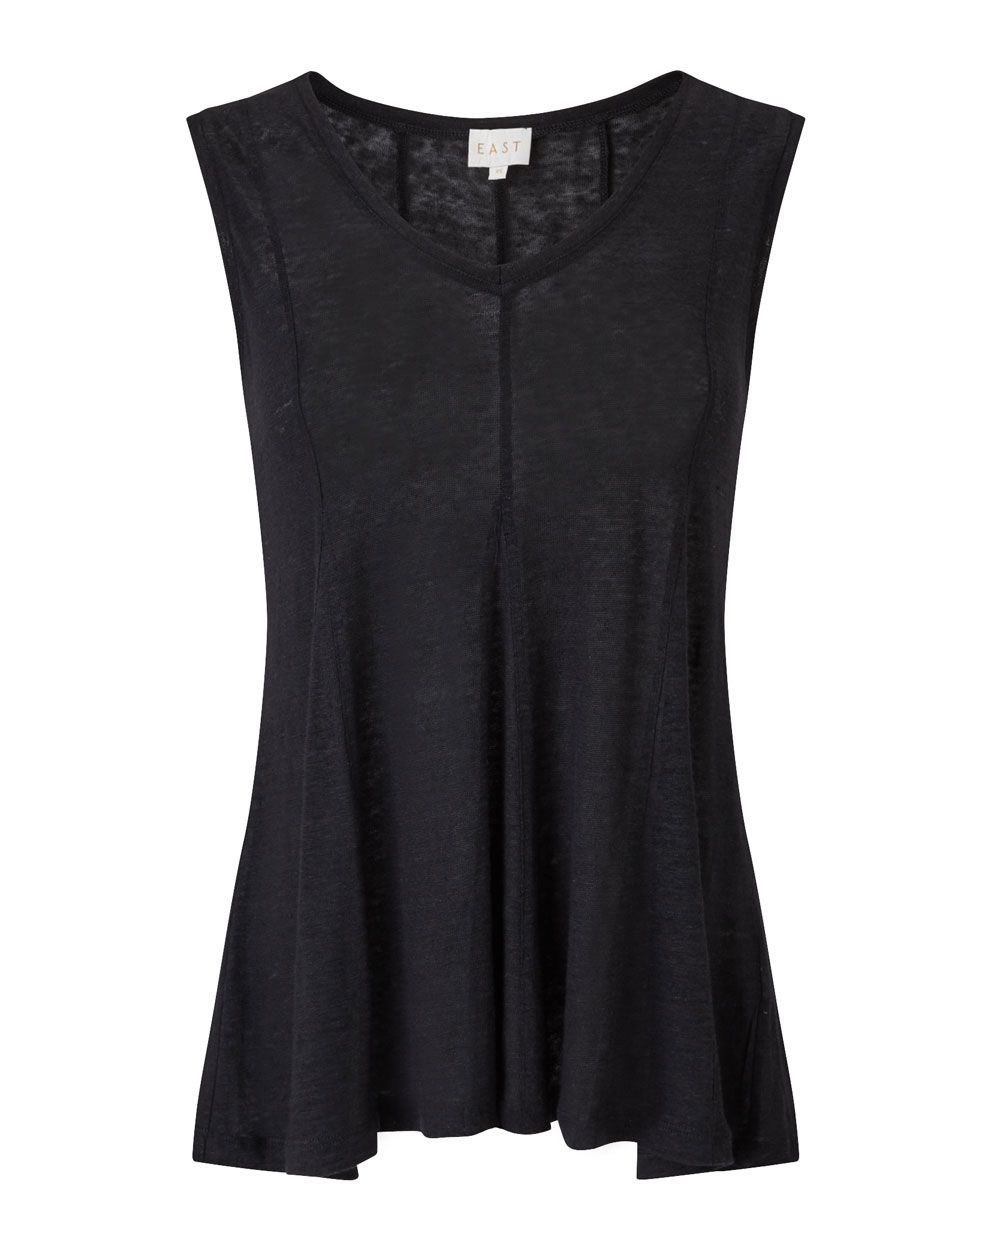 Godet Jersey Top, Black - neckline: v-neck; pattern: plain; sleeve style: sleeveless; style: vest top; predominant colour: black; occasions: casual; length: standard; fibres: linen - 100%; fit: loose; sleeve length: sleeveless; pattern type: fabric; texture group: jersey - stretchy/drapey; season: s/s 2016; wardrobe: basic